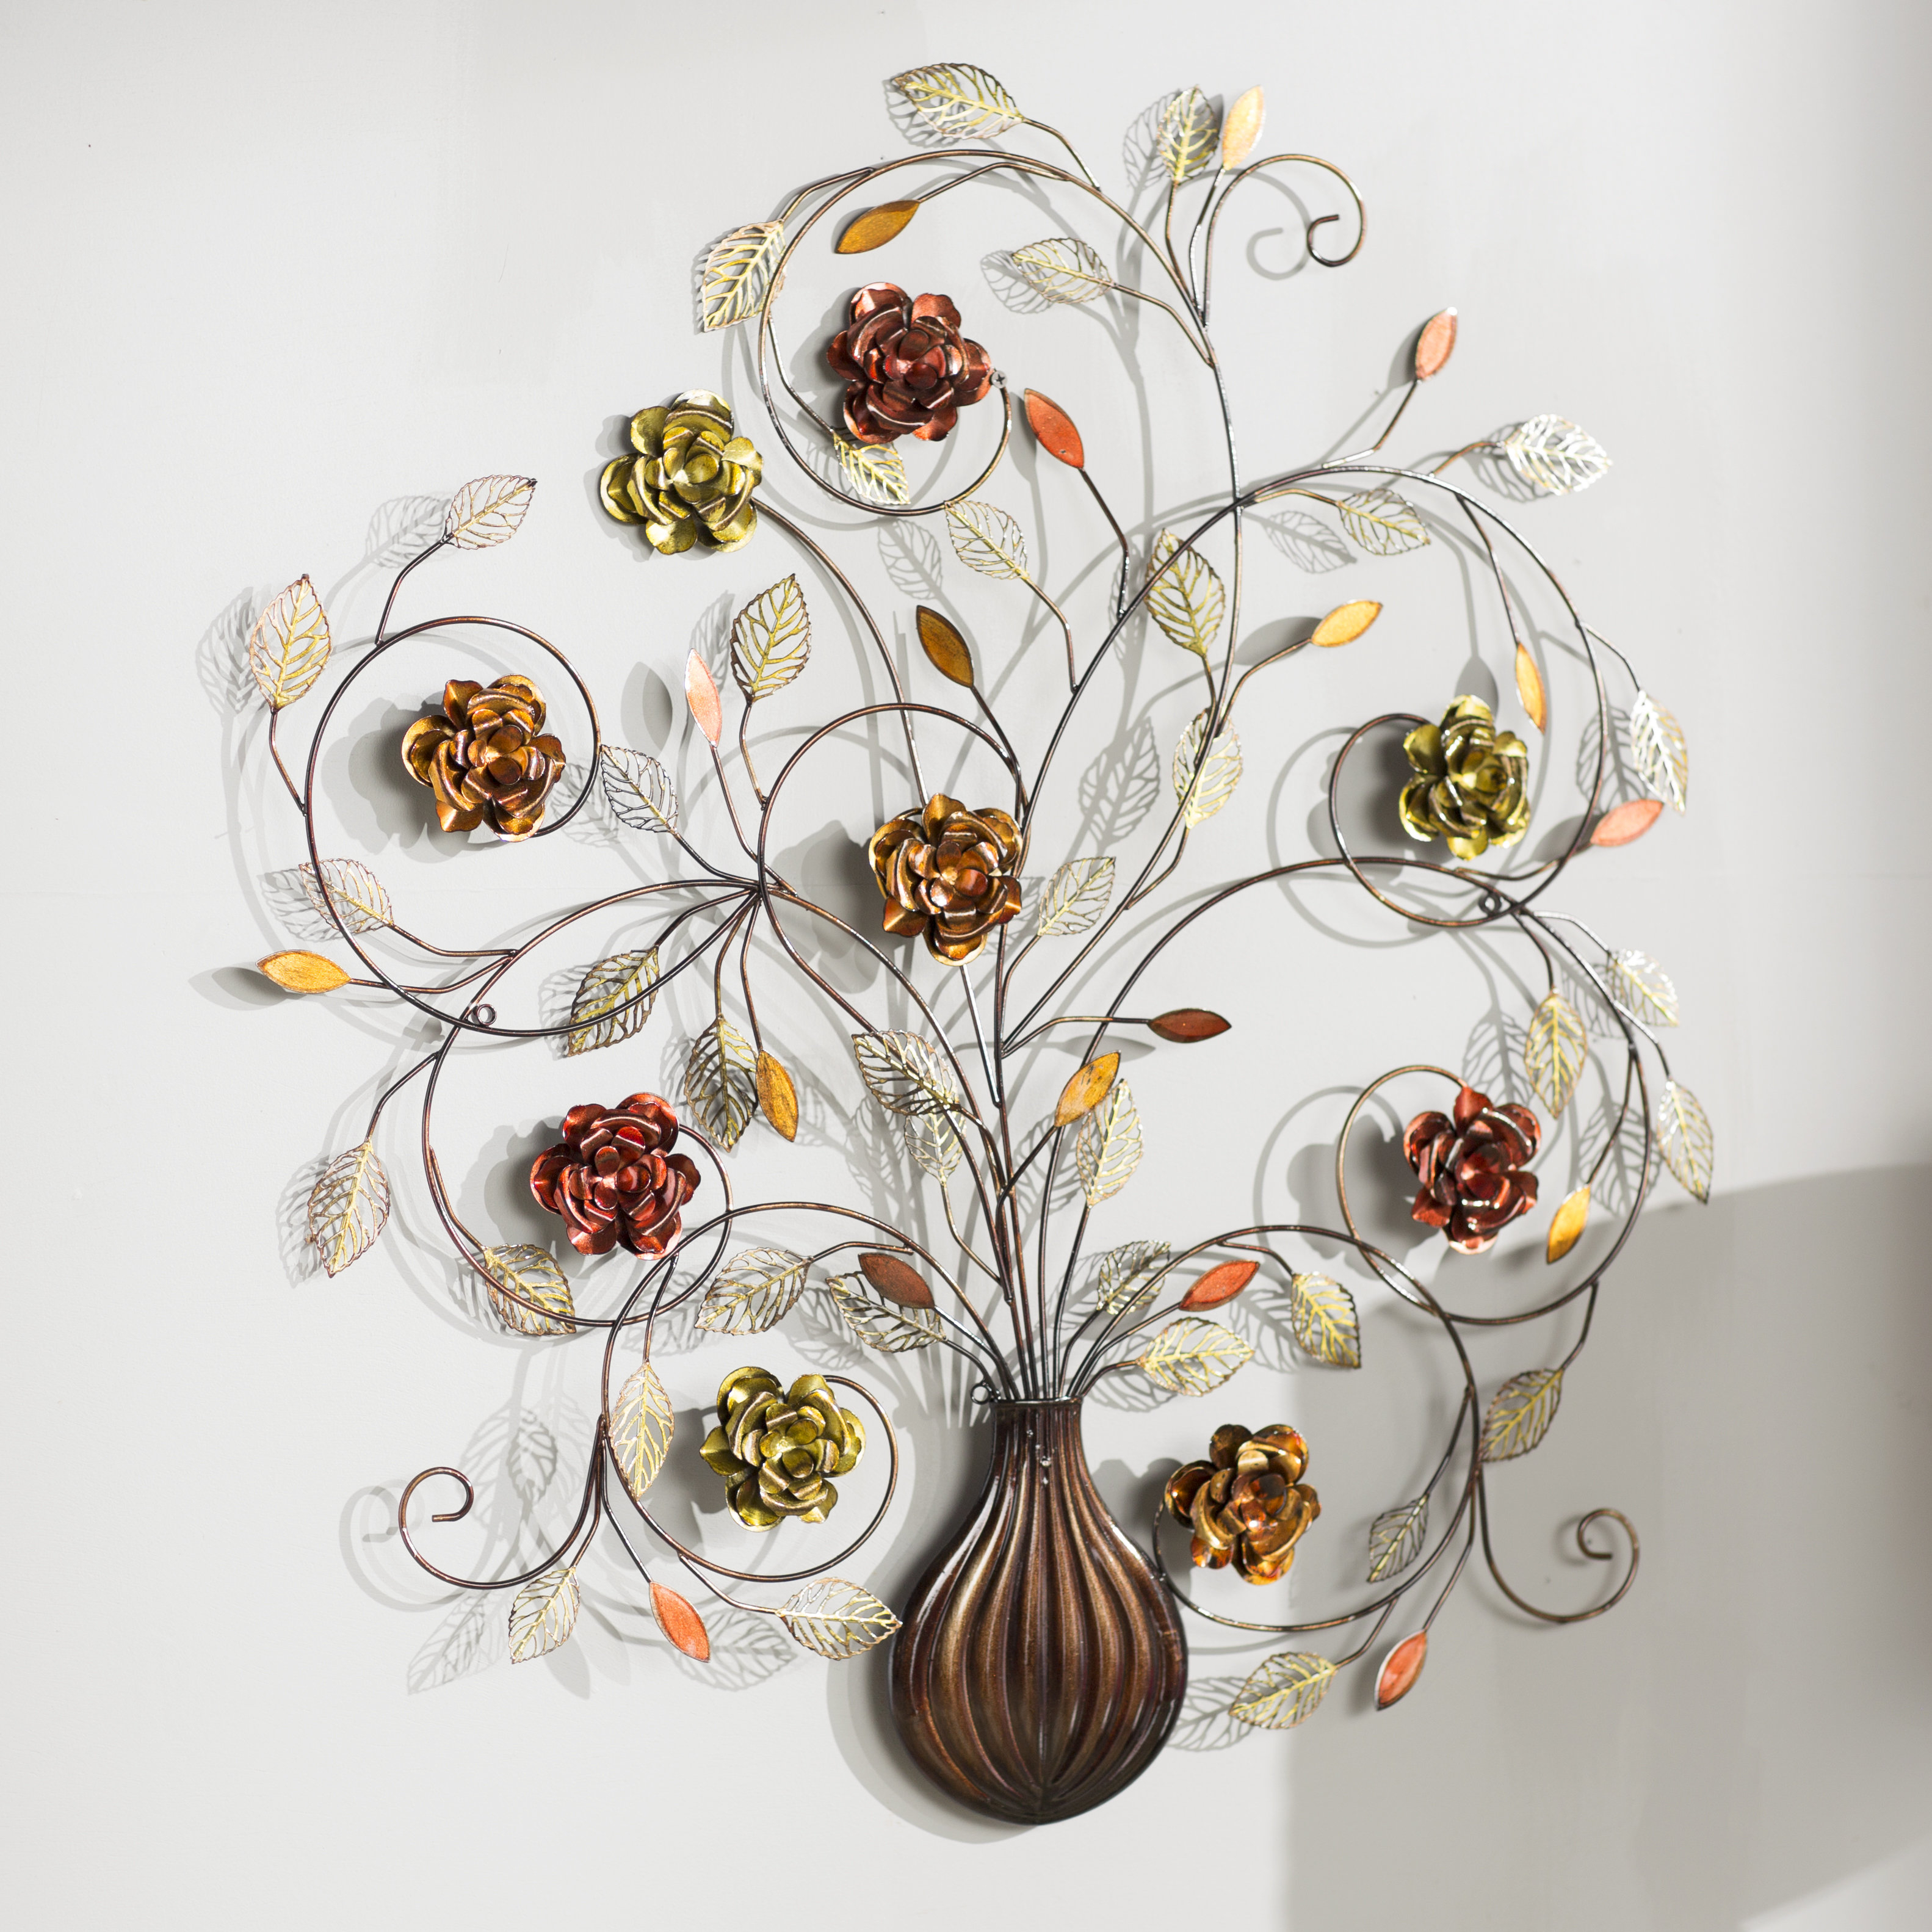 Alcott Hill Raheem Flowers Metal Wall Décor & Reviews intended for Scattered Metal Italian Plates Wall Decor (Image 2 of 30)